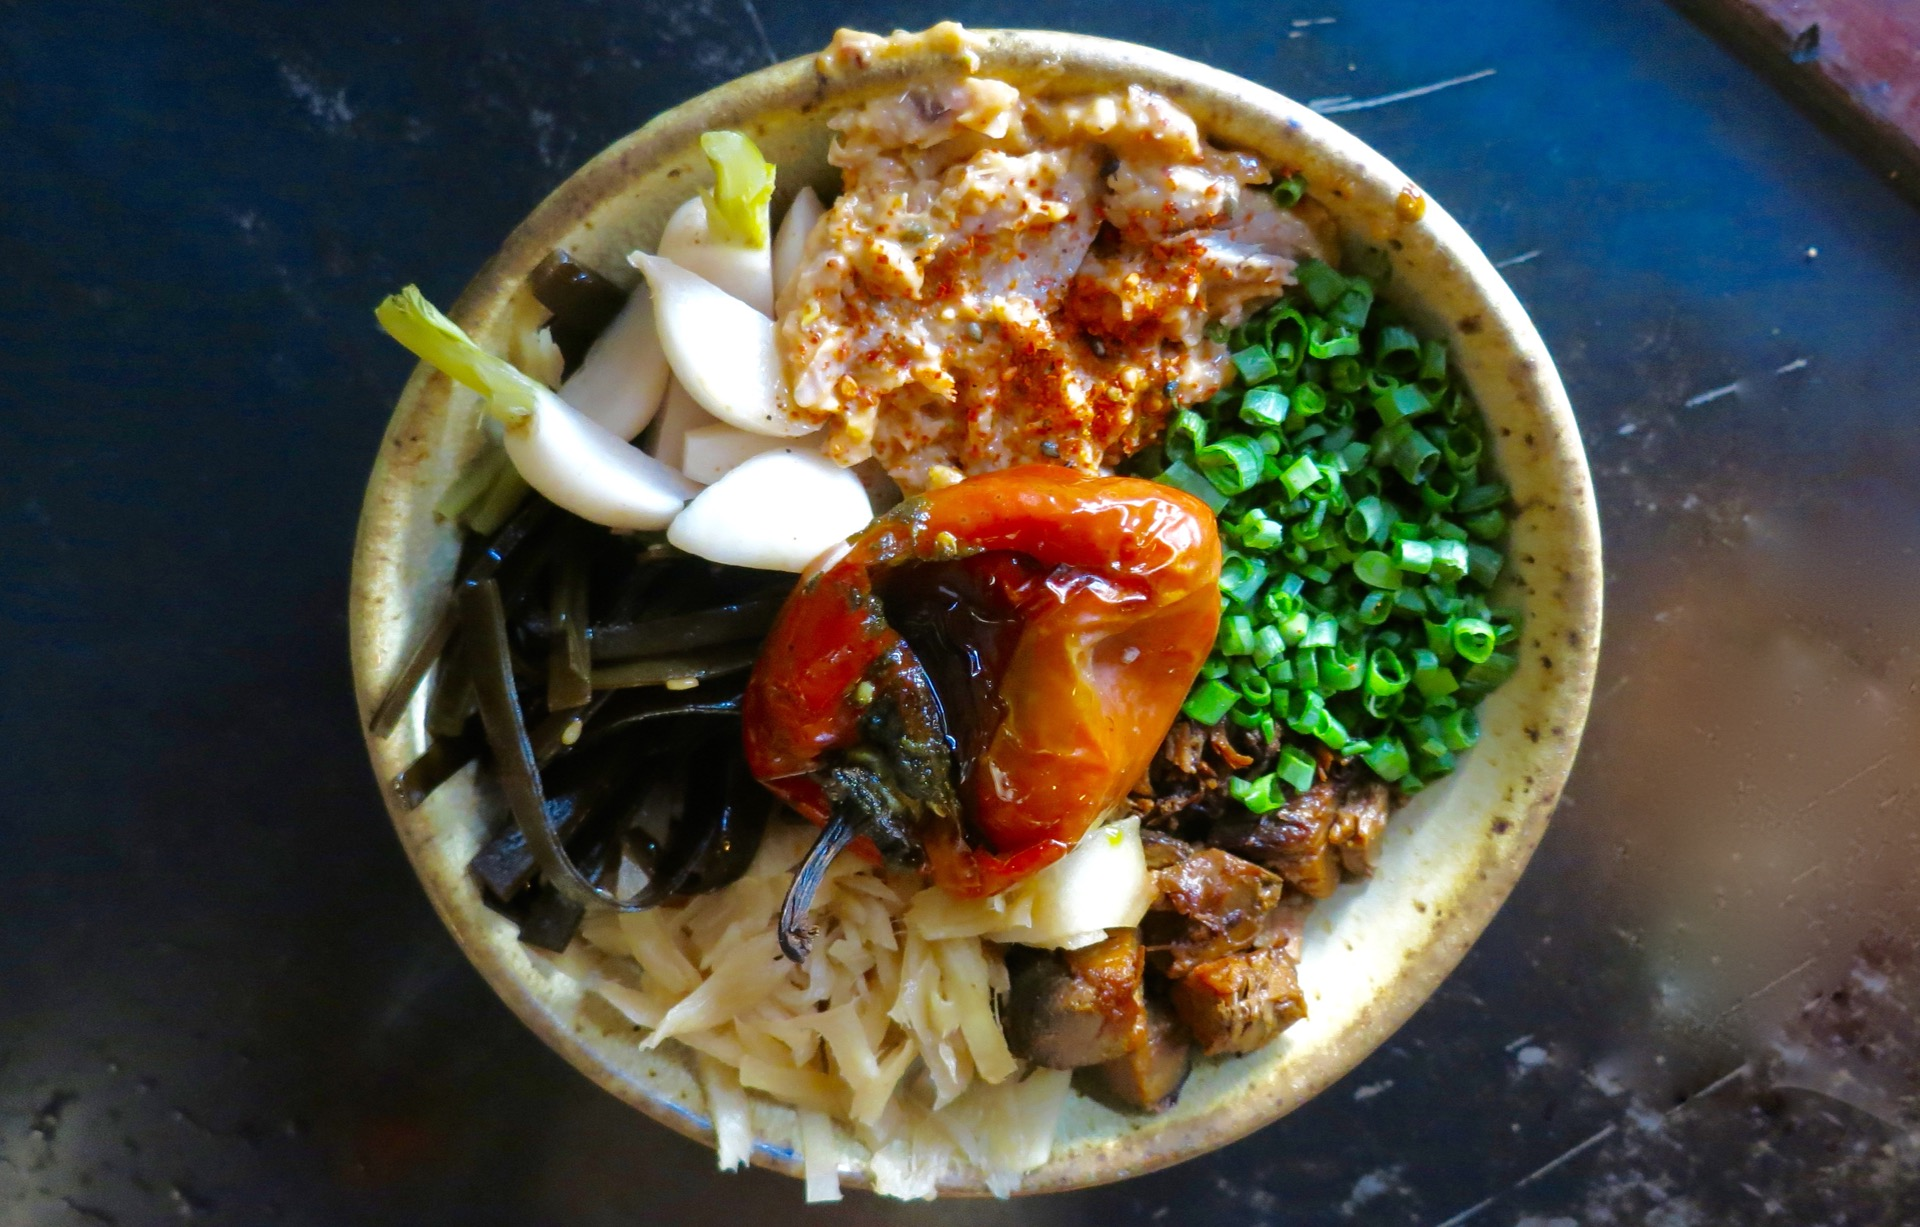 Rockridge's Ramen Shop features a special donburi bowl that changes daily.